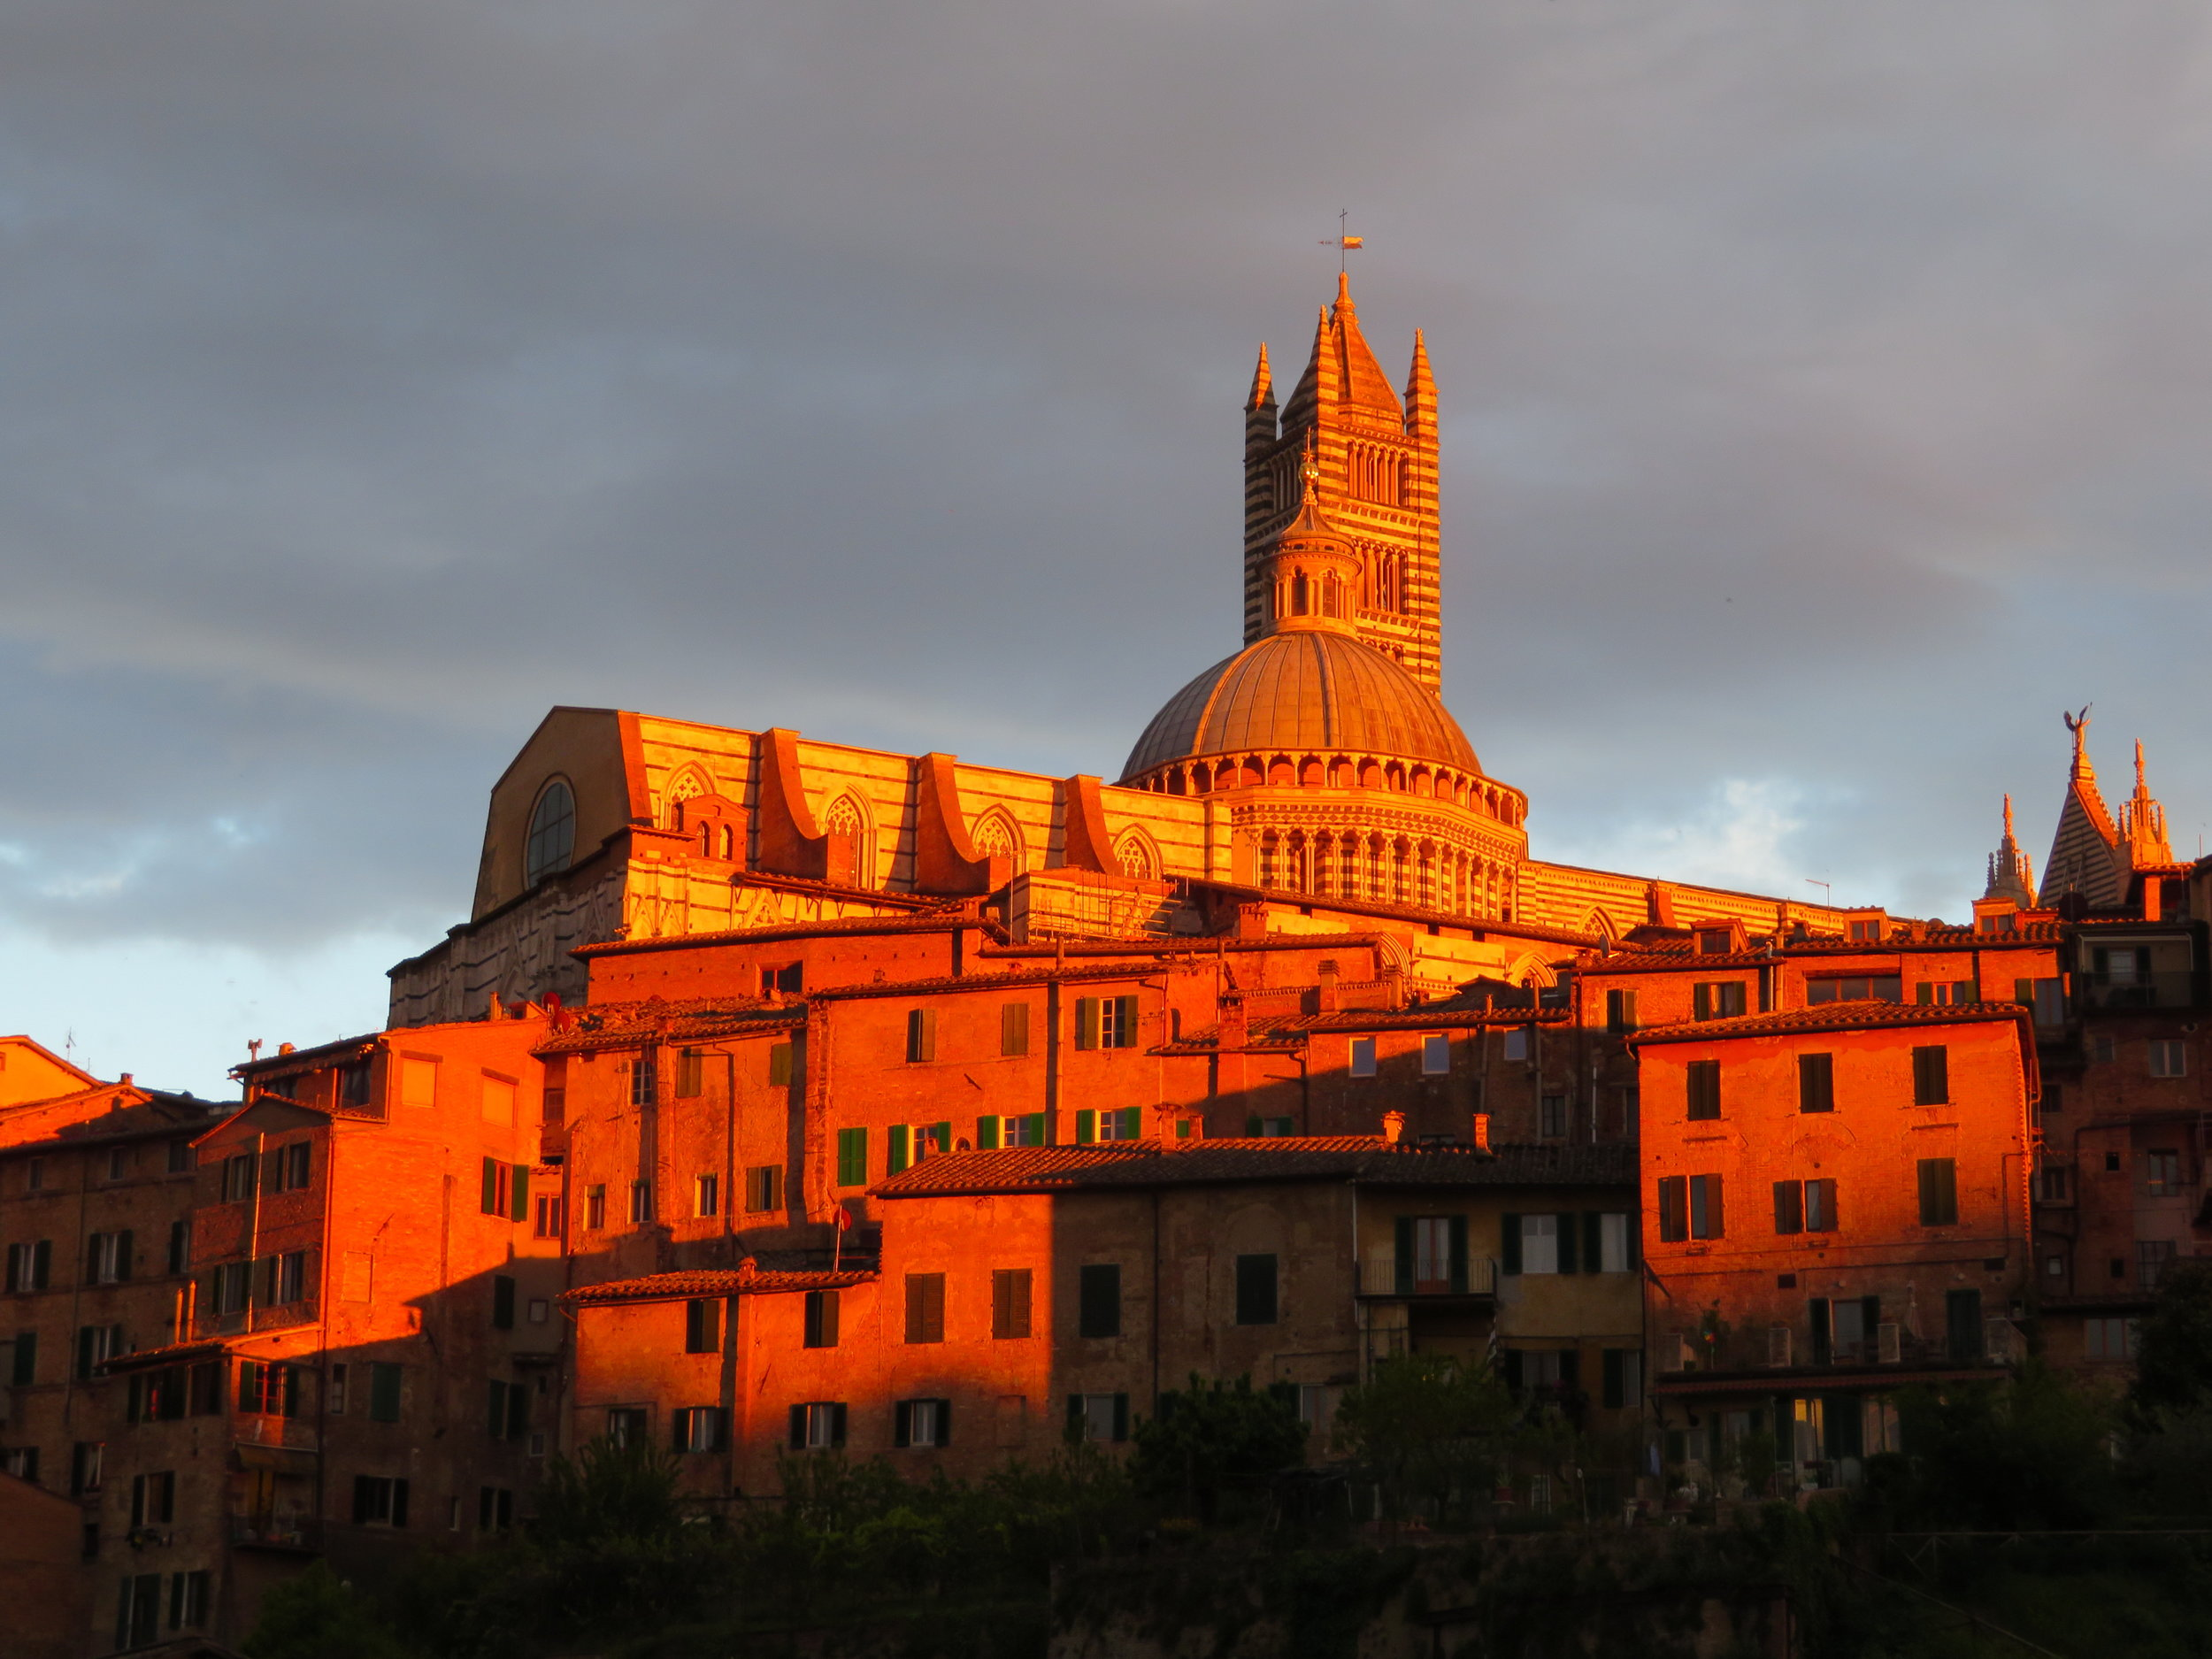 At sunset, it was as if the Duomo was on fire.